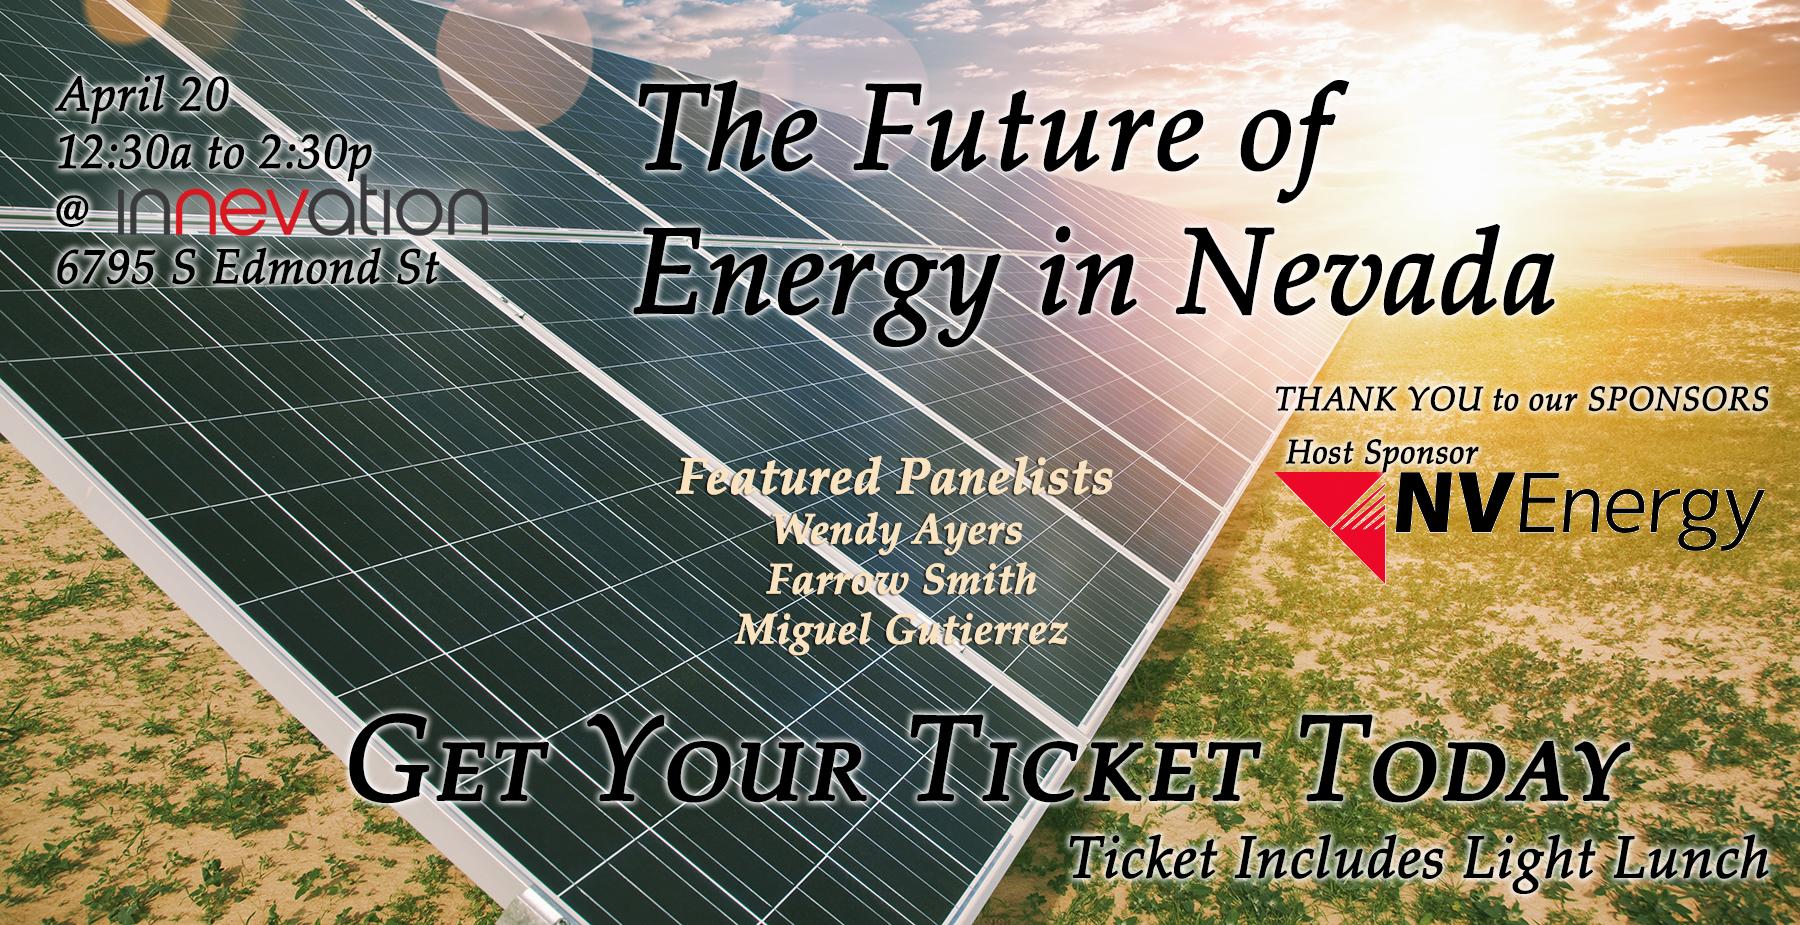 Future of Energy in Nevada - Event at Innevation powred by Switch